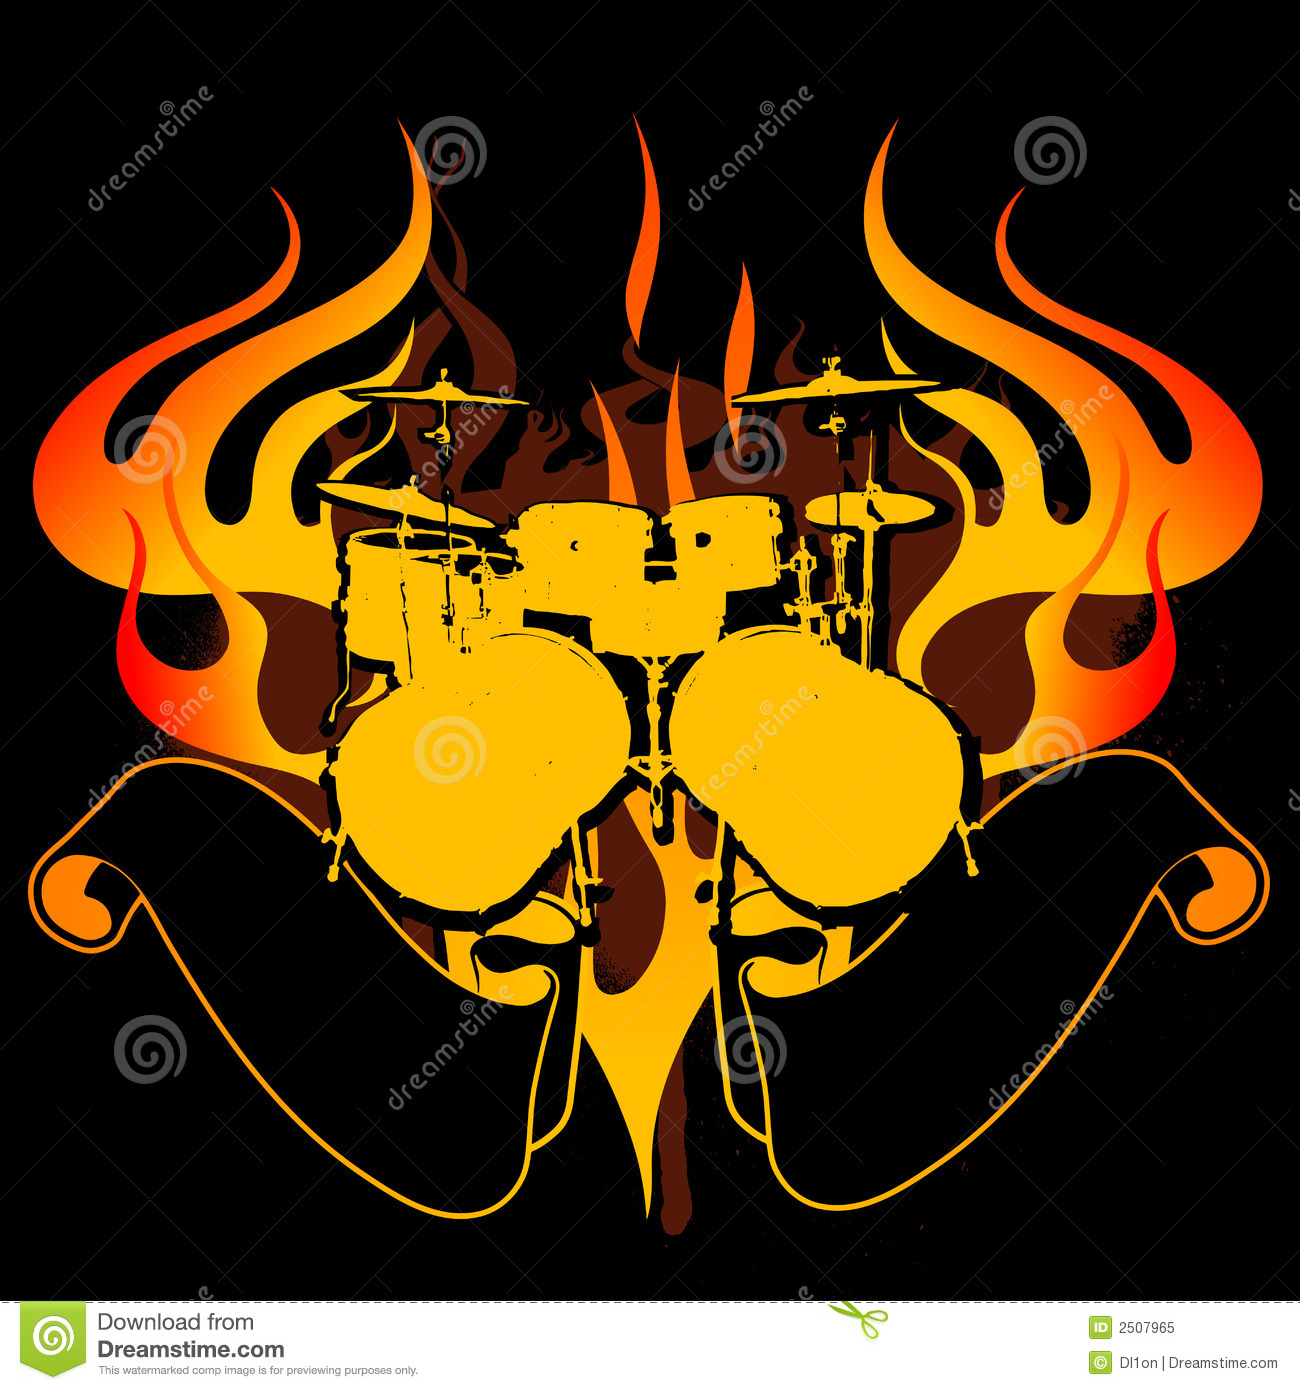 Fire Drums Graffiti Banner Royalty Free Stock Photo - Image: 2507965